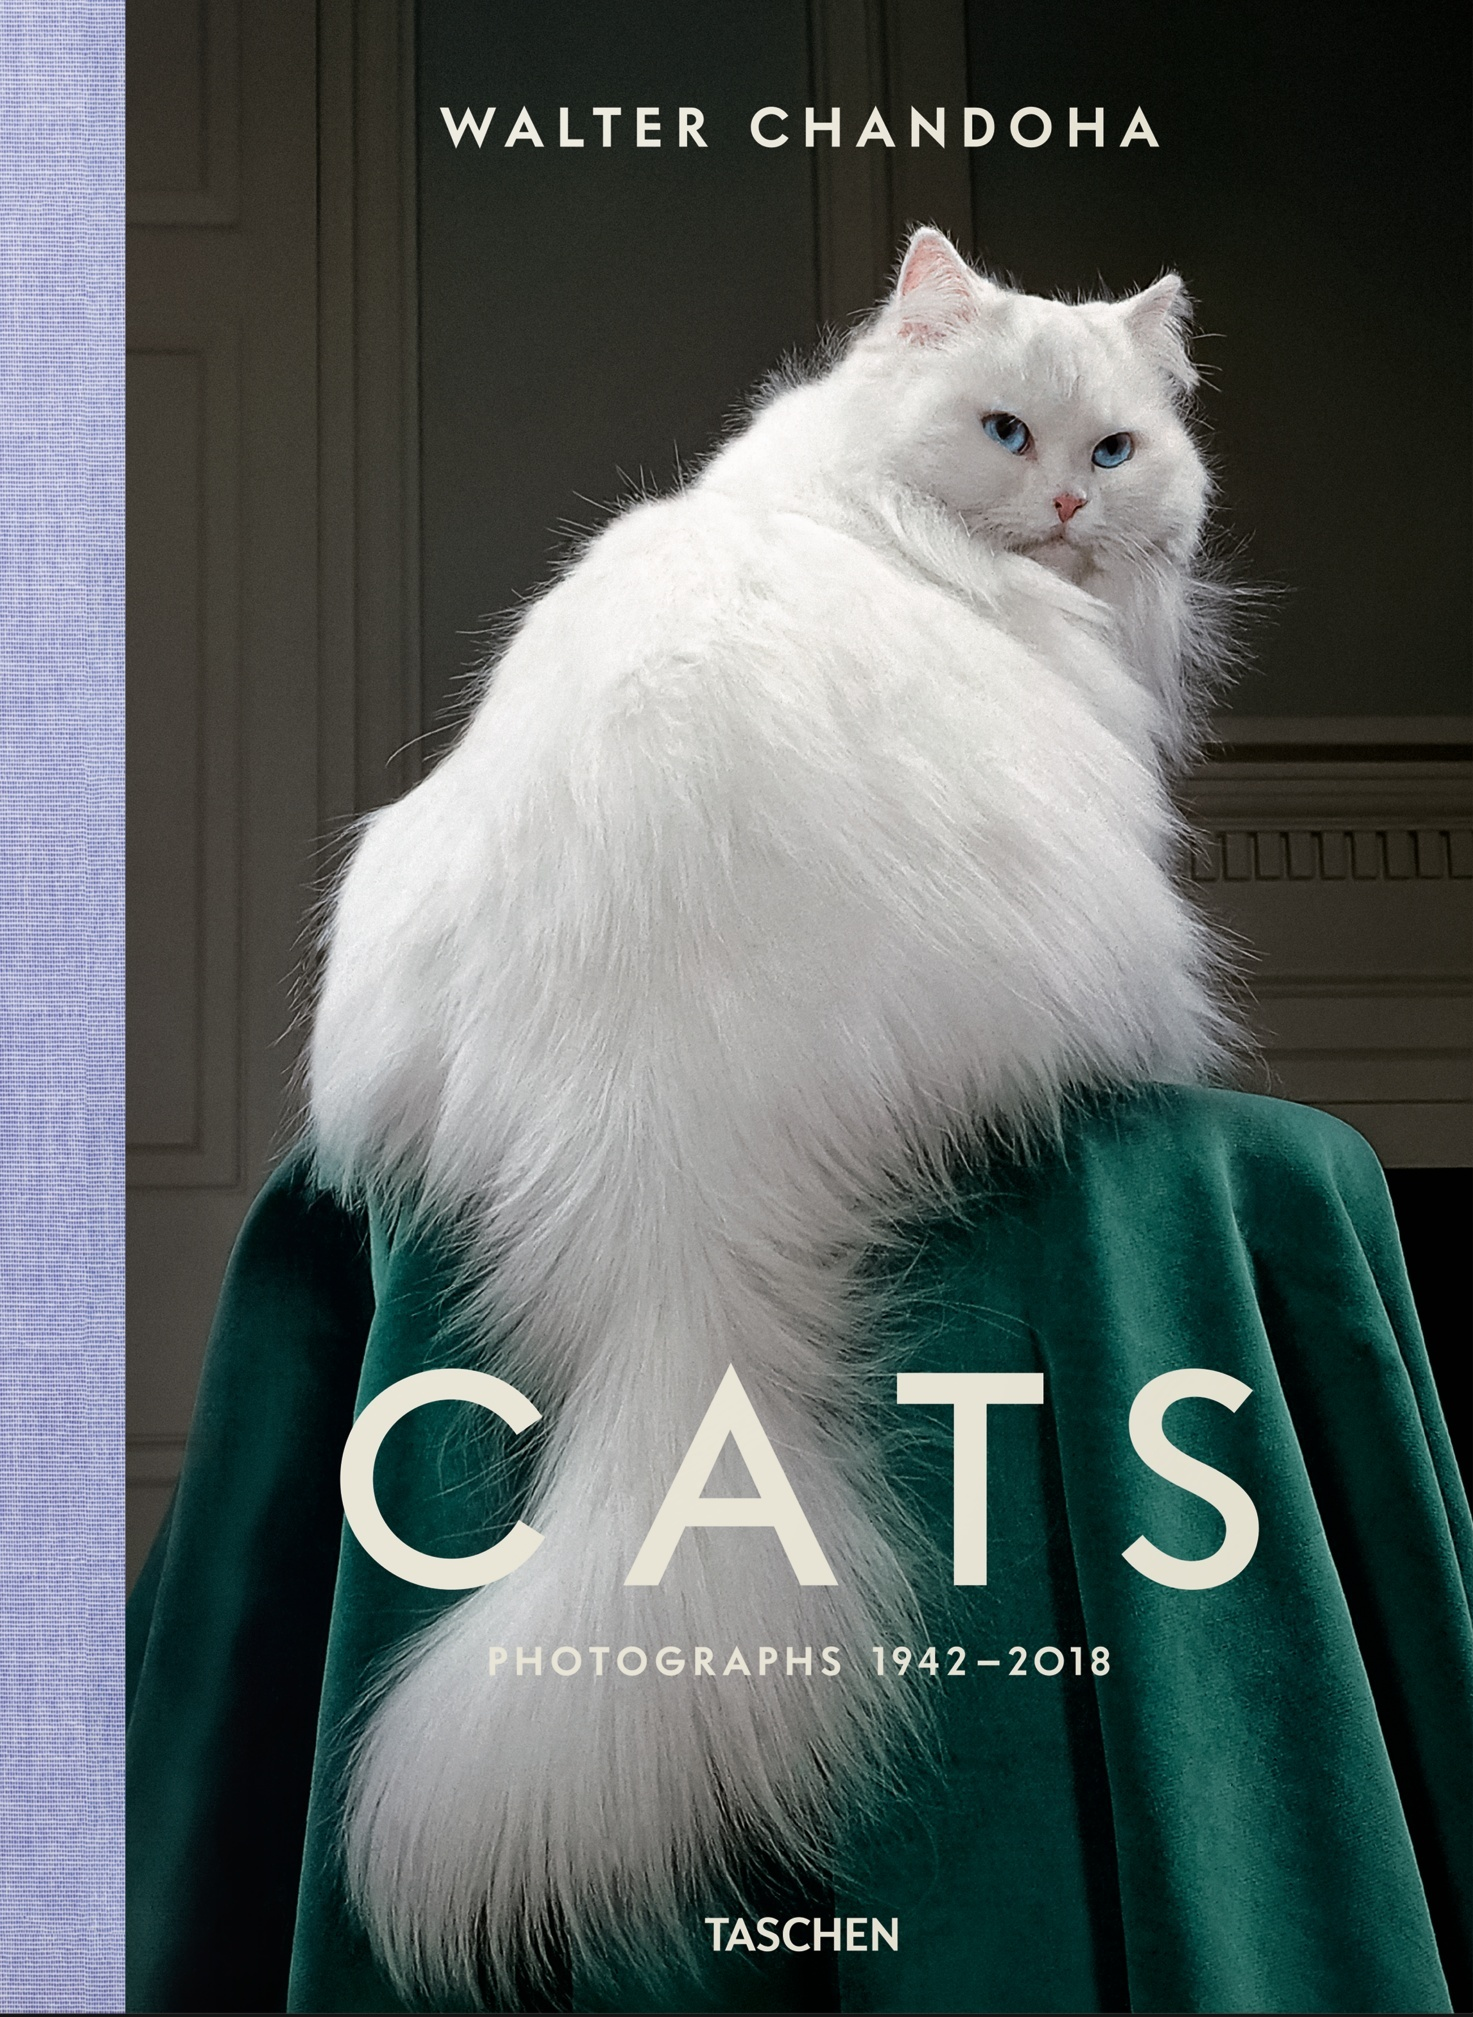 Walter Chandoha. Cats. Photographs 1942-2018